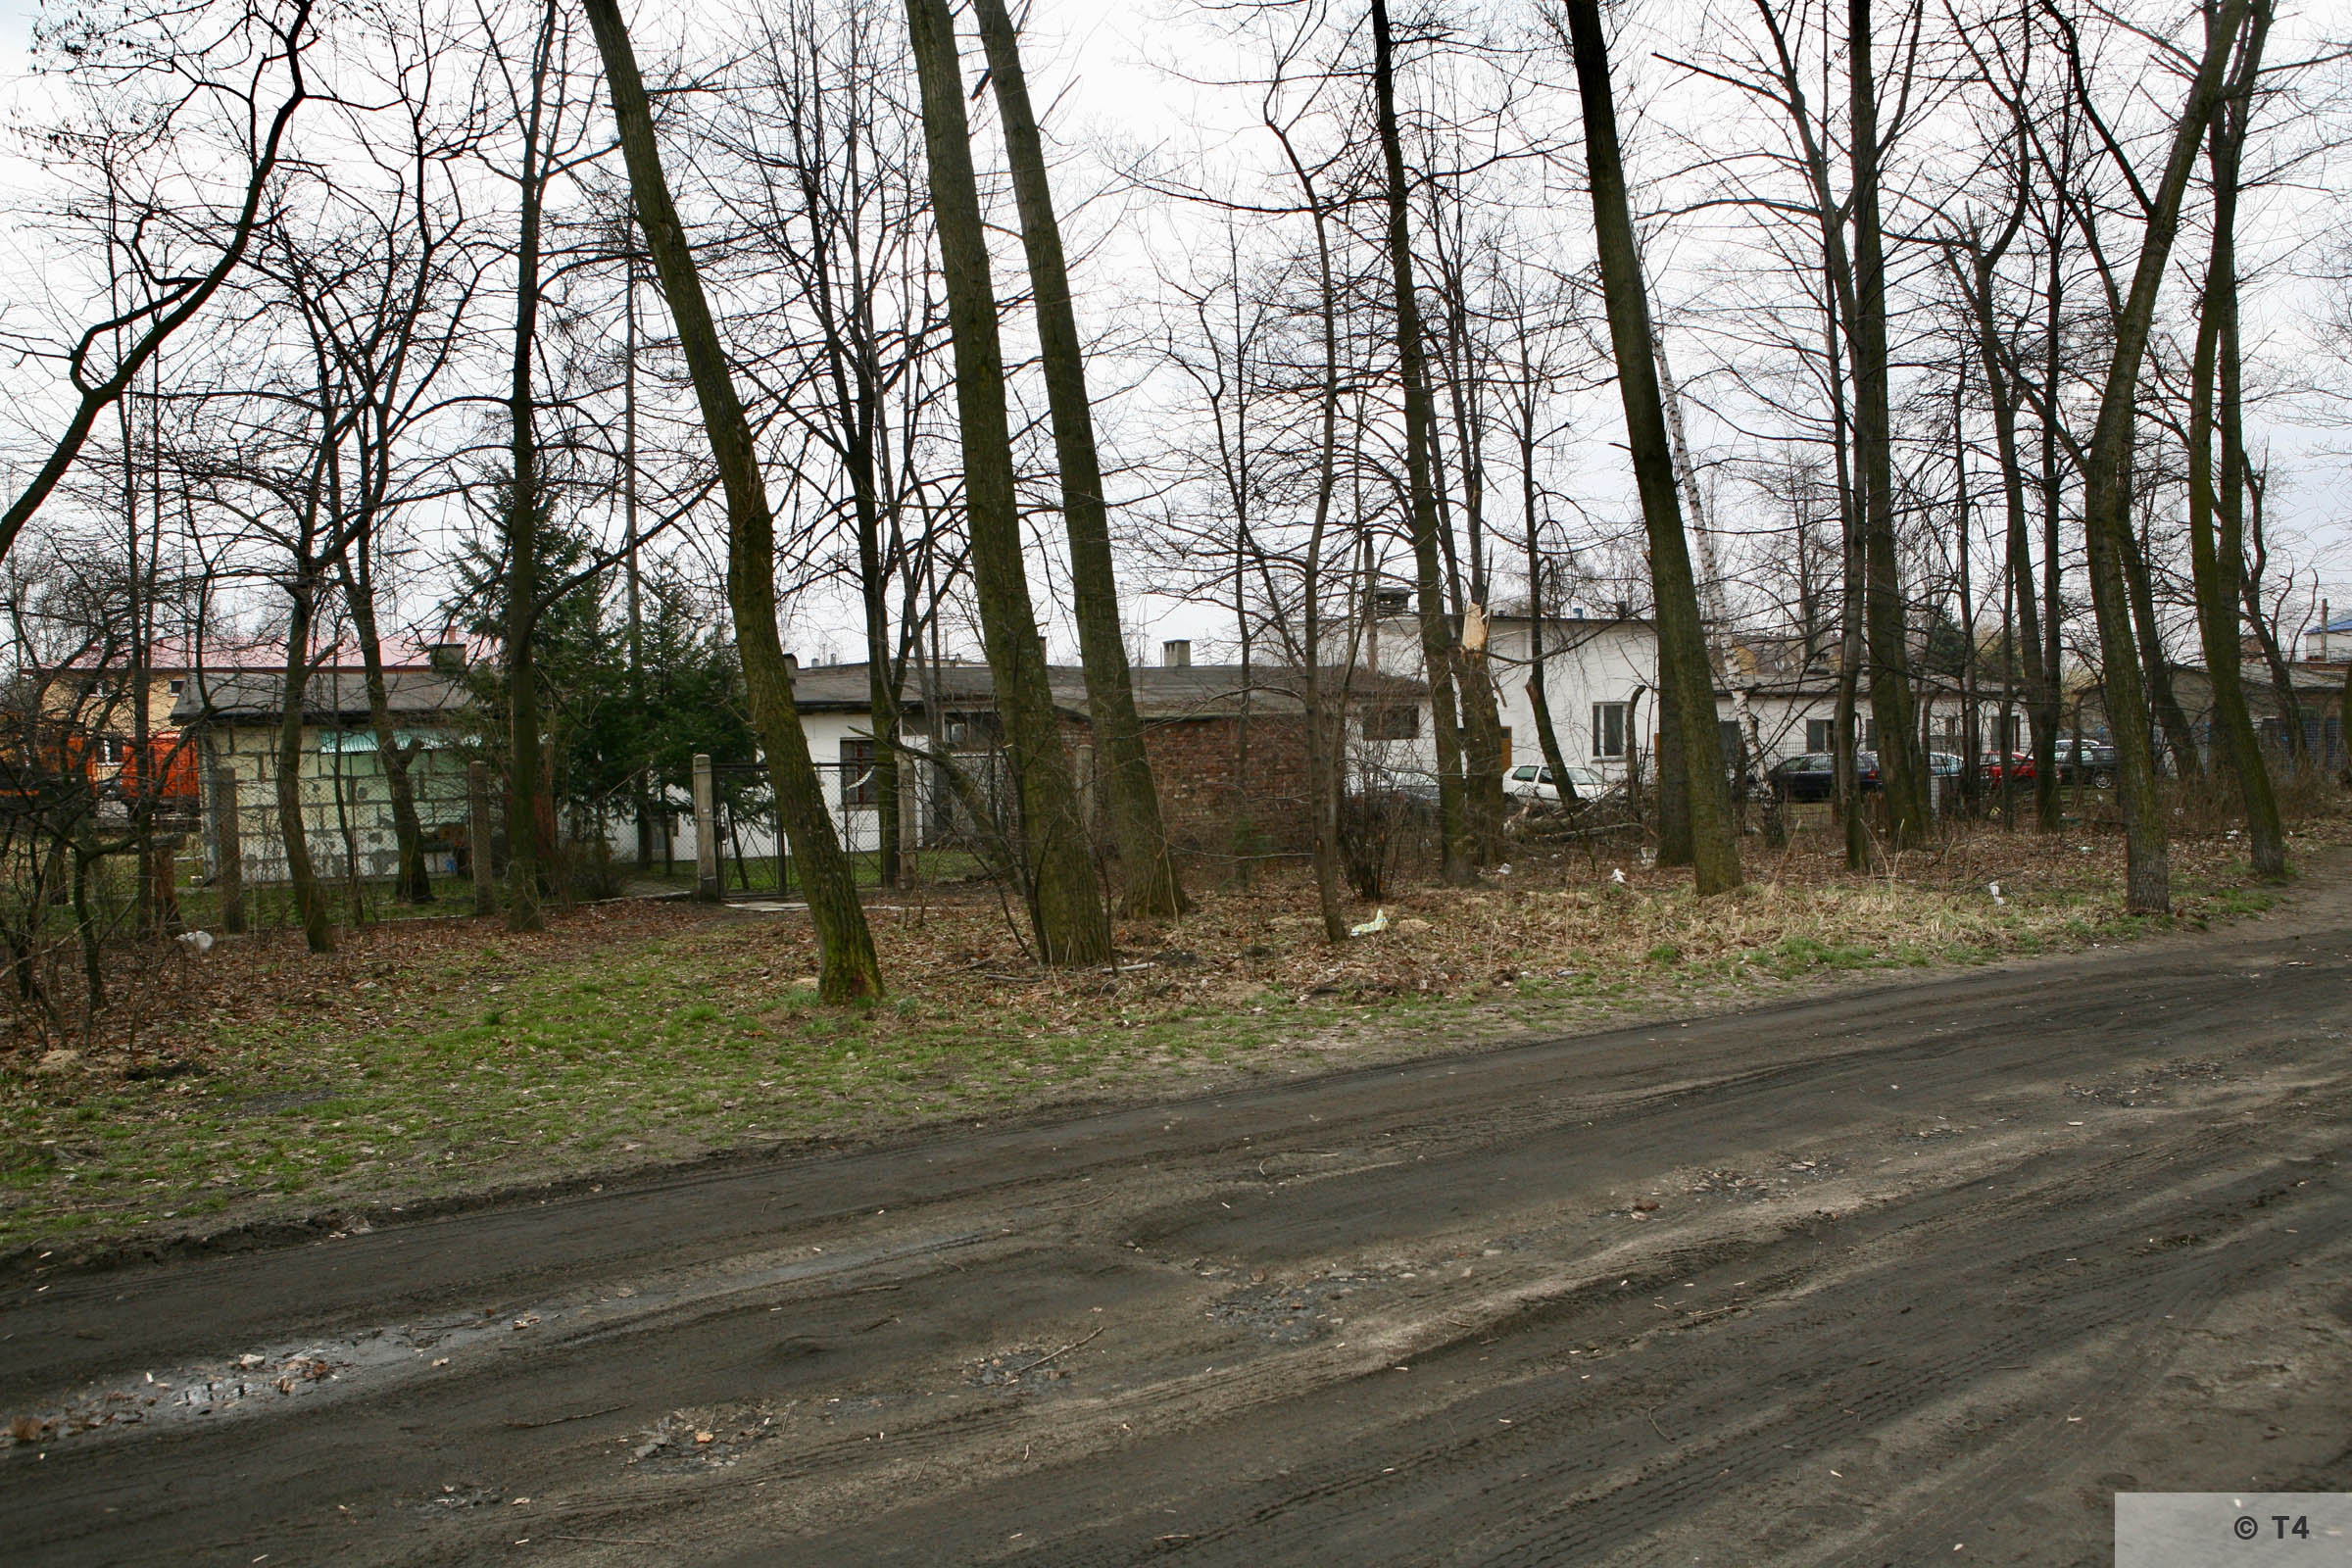 Former Blockführerstube near the camp main entrance gate and remnants of camp fence. 2007 T4 6199